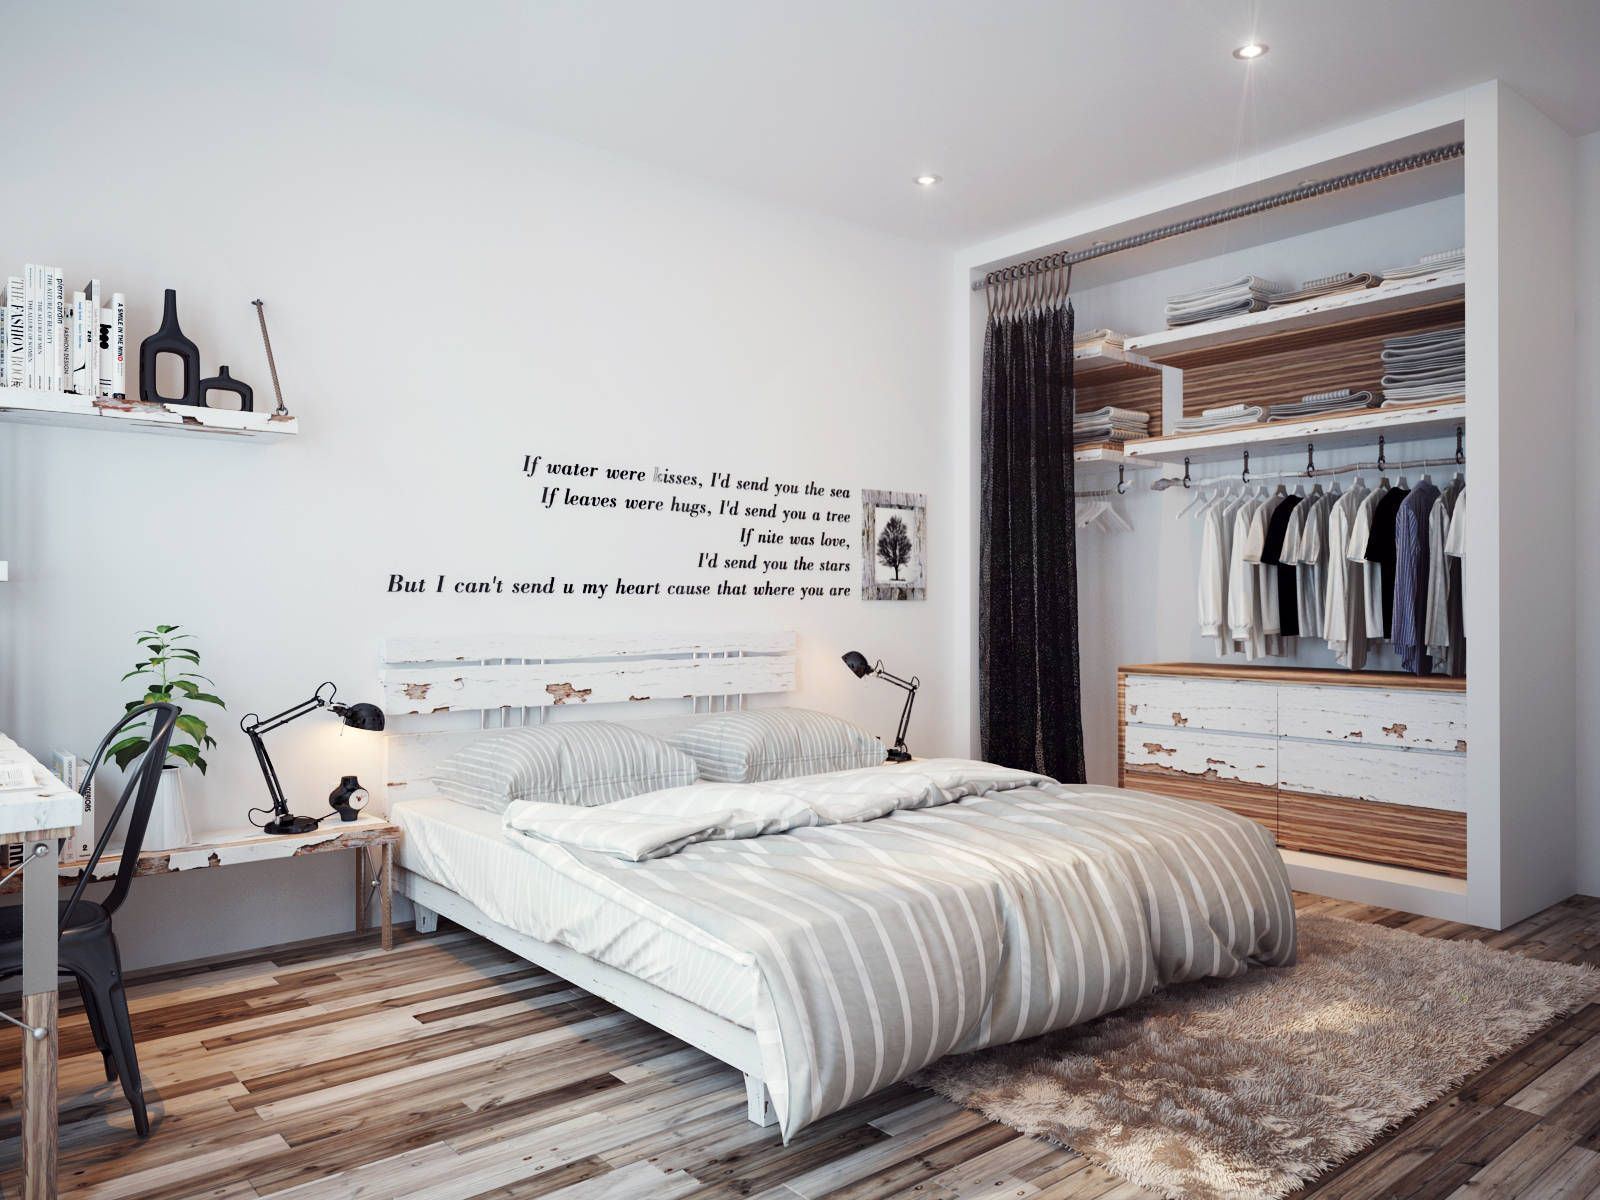 Bedroom Bedroom Wall Quote White Wall Large Closet Design Double